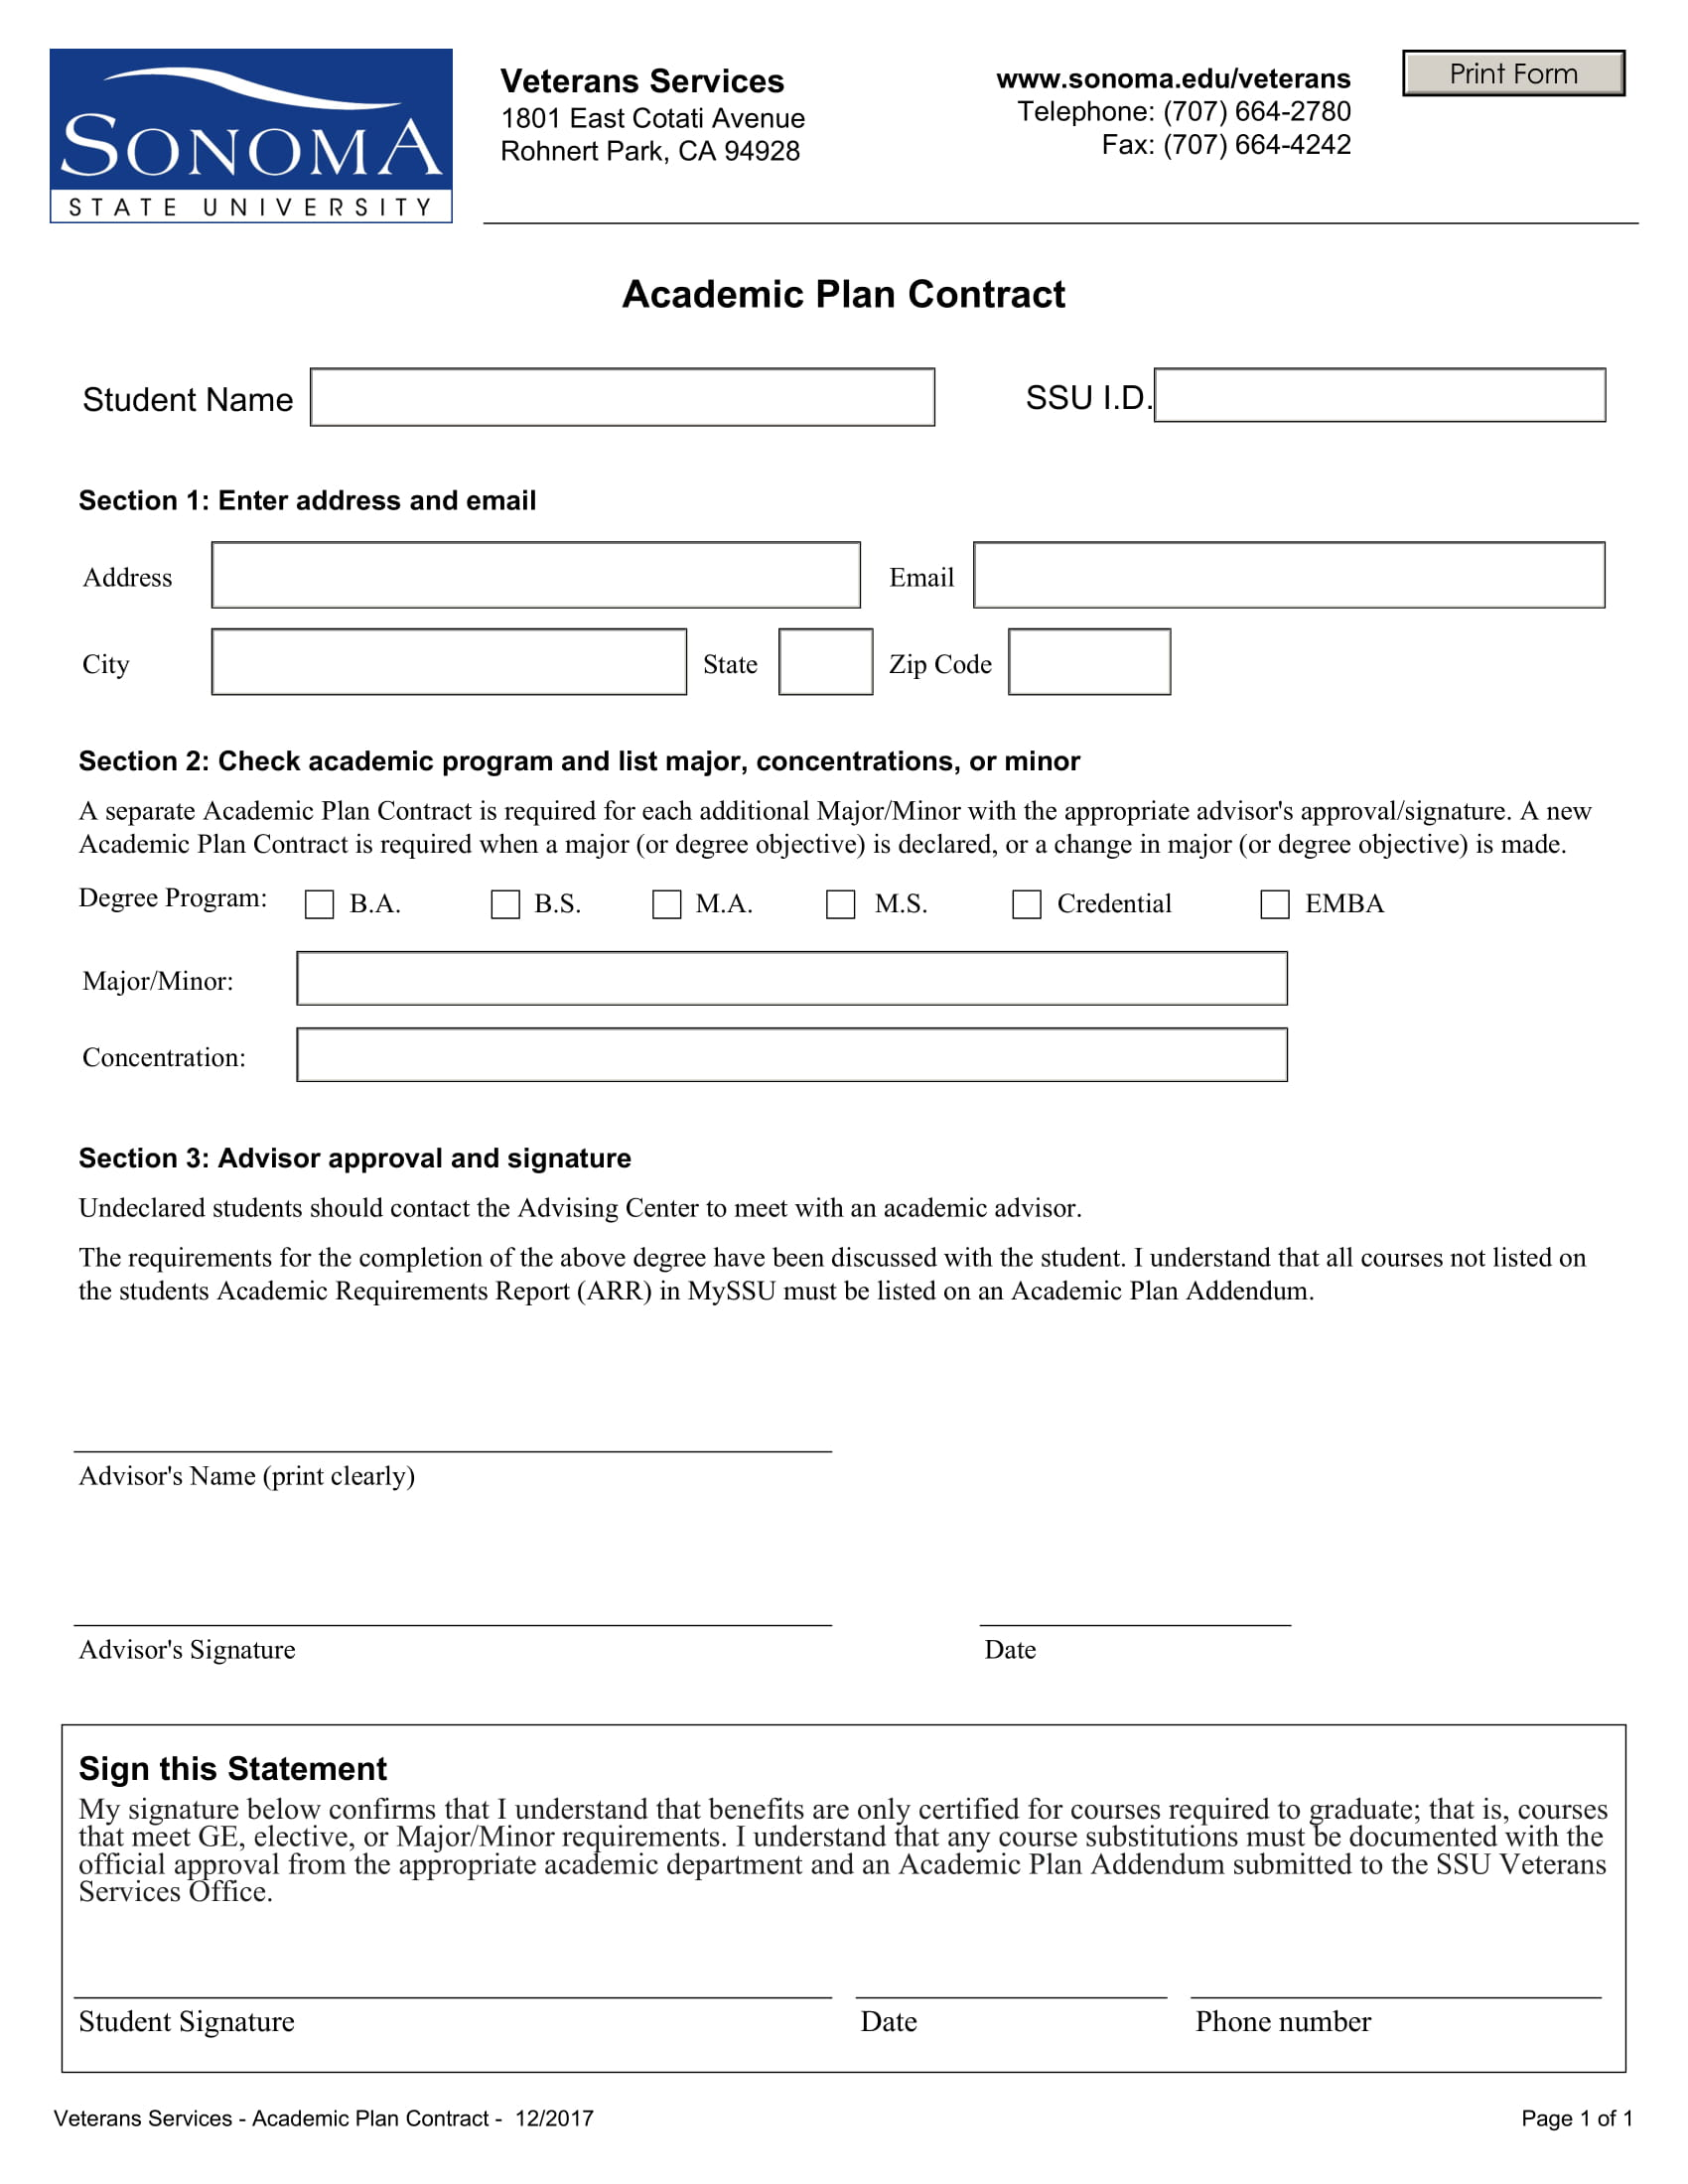 student academic plan contract template example 1